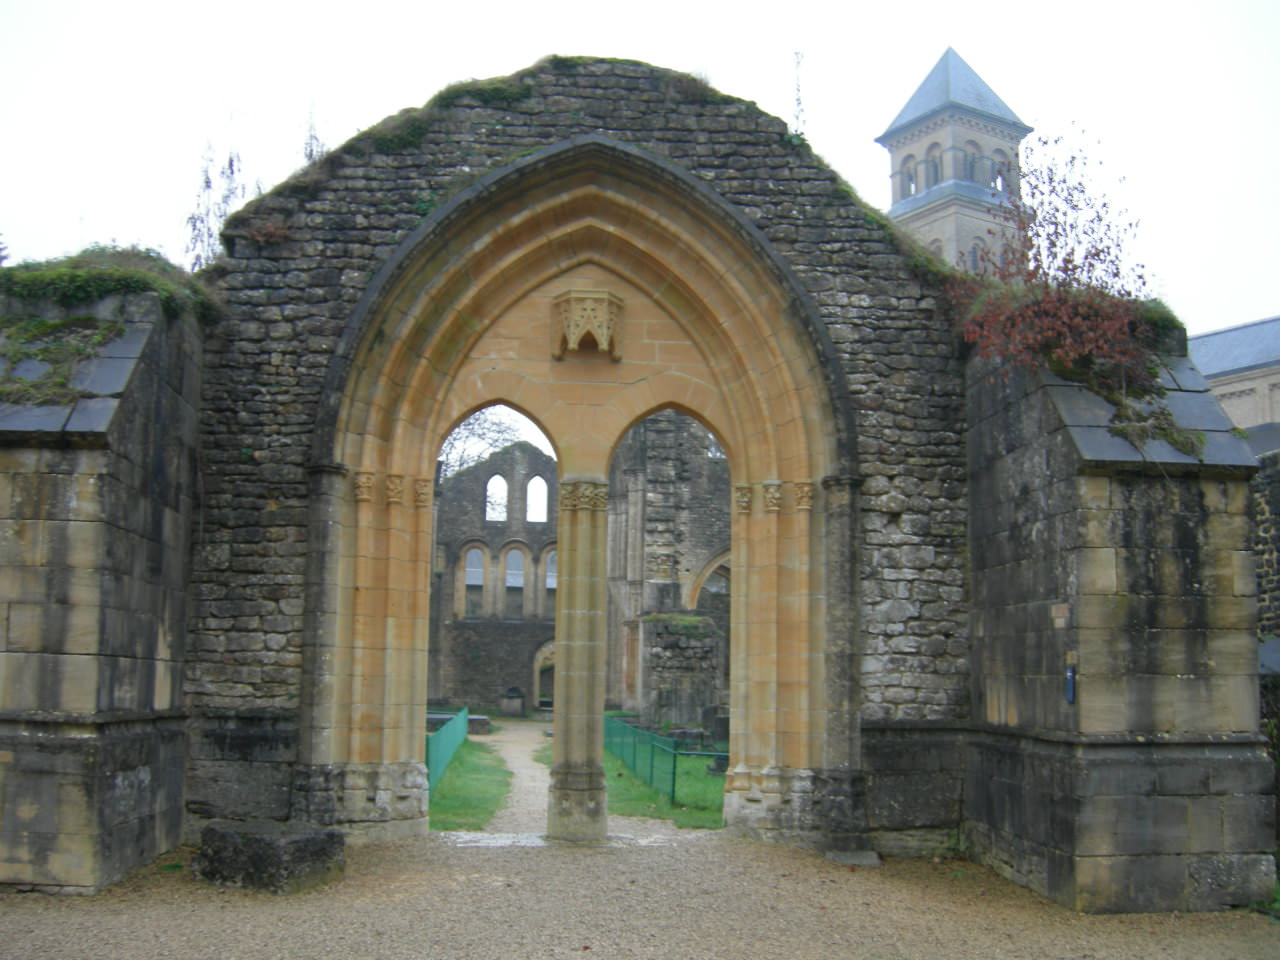 Explore the Atmospheric Ruins at Orval Monastery while You're Getting Your Trappist Beer